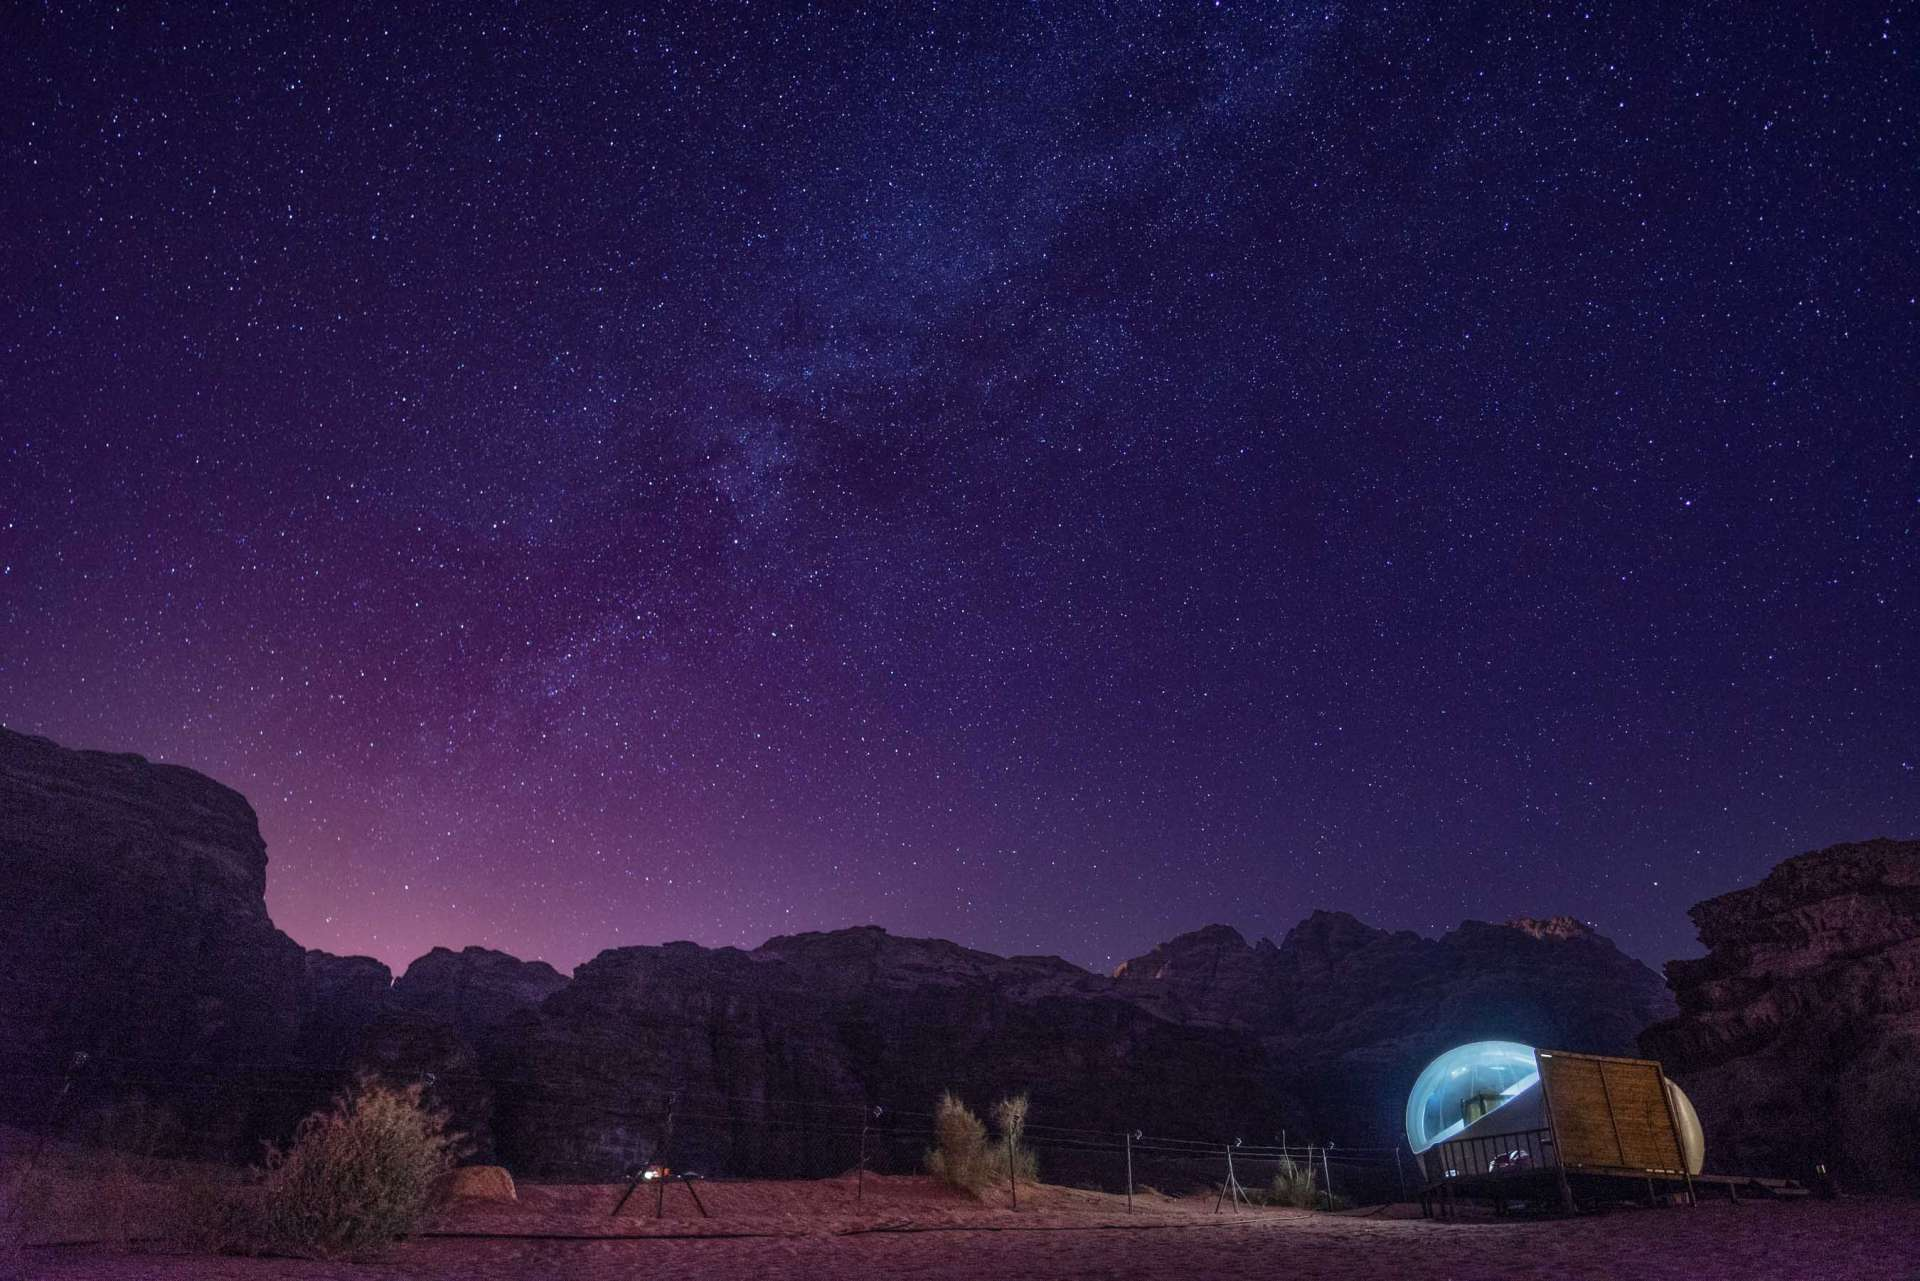 Wadi Rum Night Luxury Camp Full of Stars tent Jordan Enrico Pescantini stargazing stars milky way 3